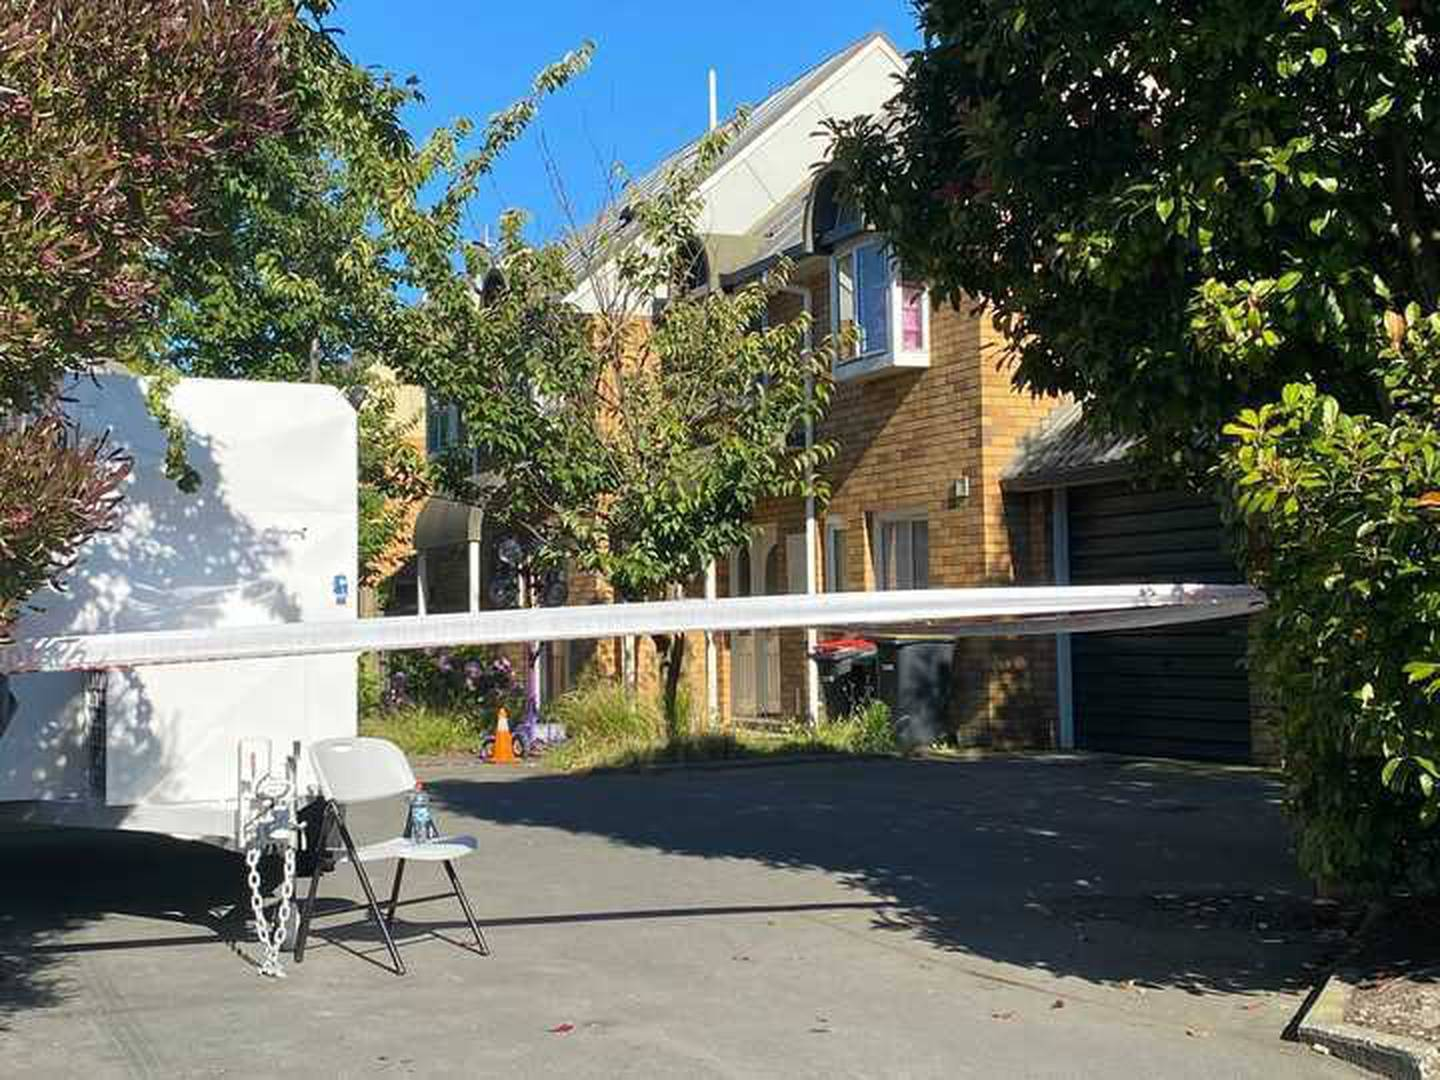 Michael Joseph Graham, 57, was found dead at a house on England St, Linwood, last month. Photo: NZH